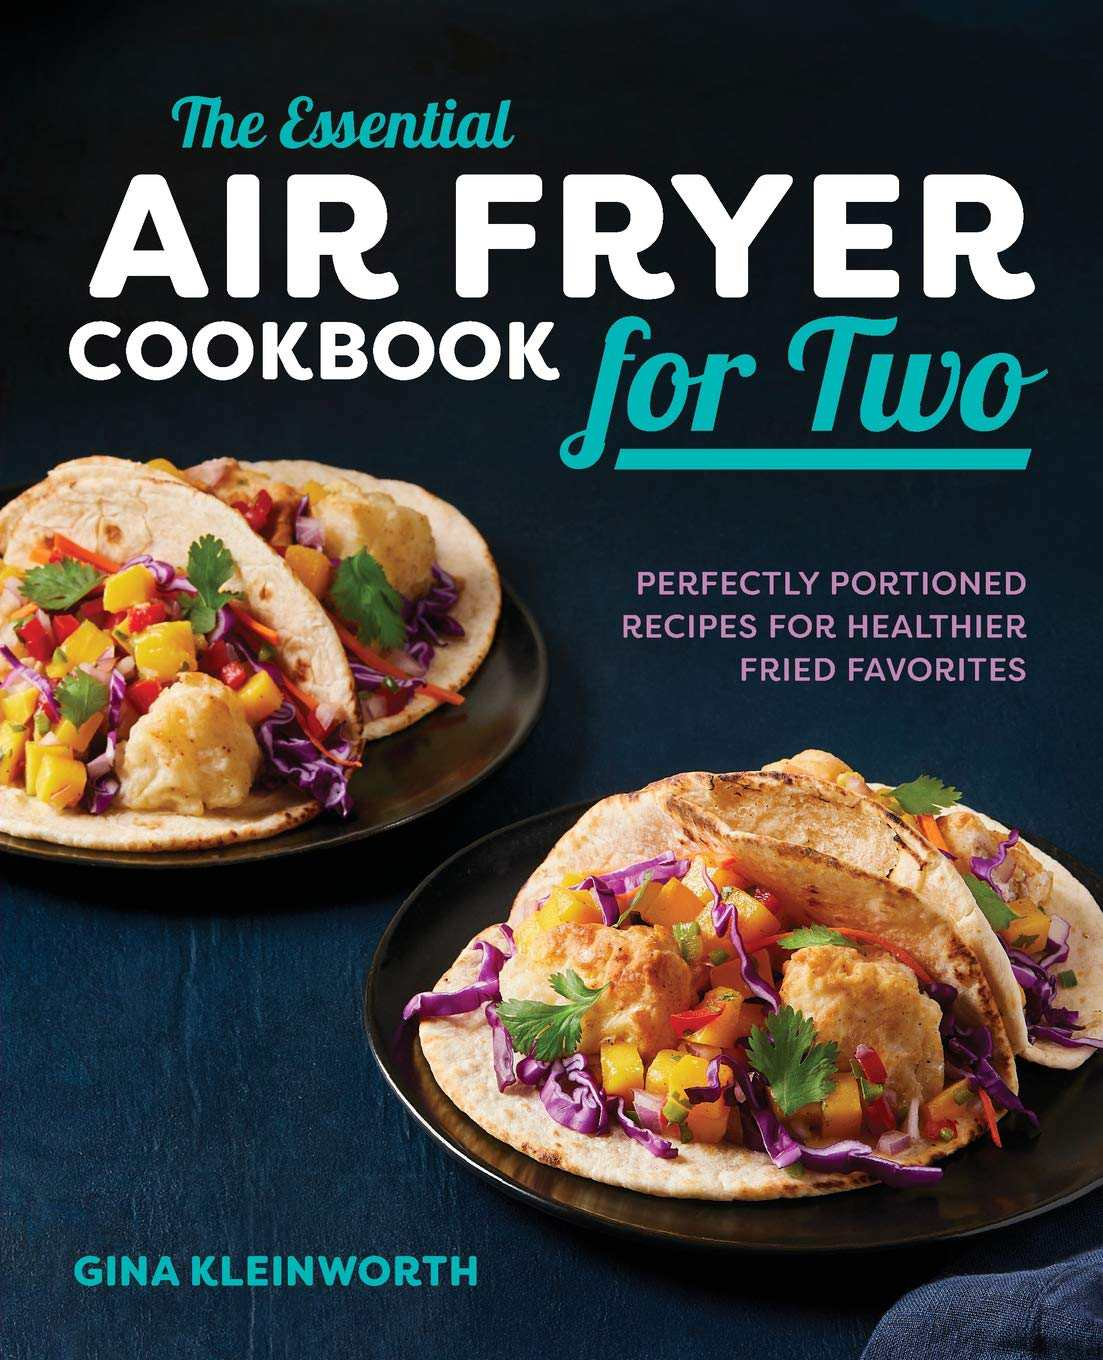 The Essential Air Fryer Cookbook for Two—Best Air Fryer Cookbooks